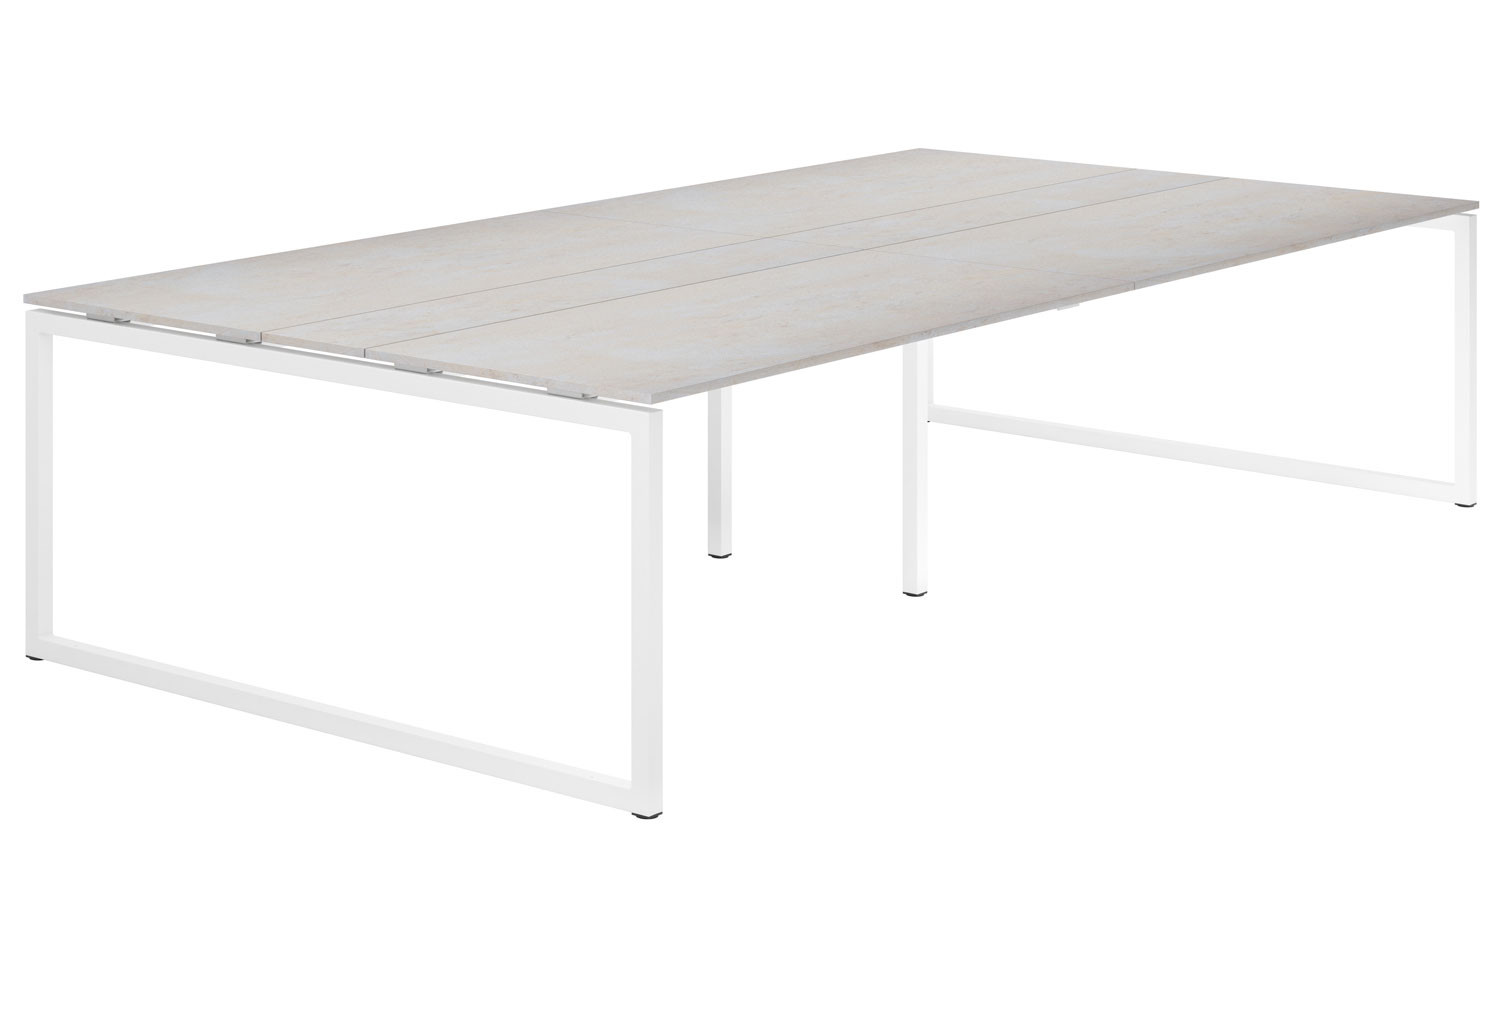 Lasso Hooped Leg 10-12 Person Meeting Table (Concrete)